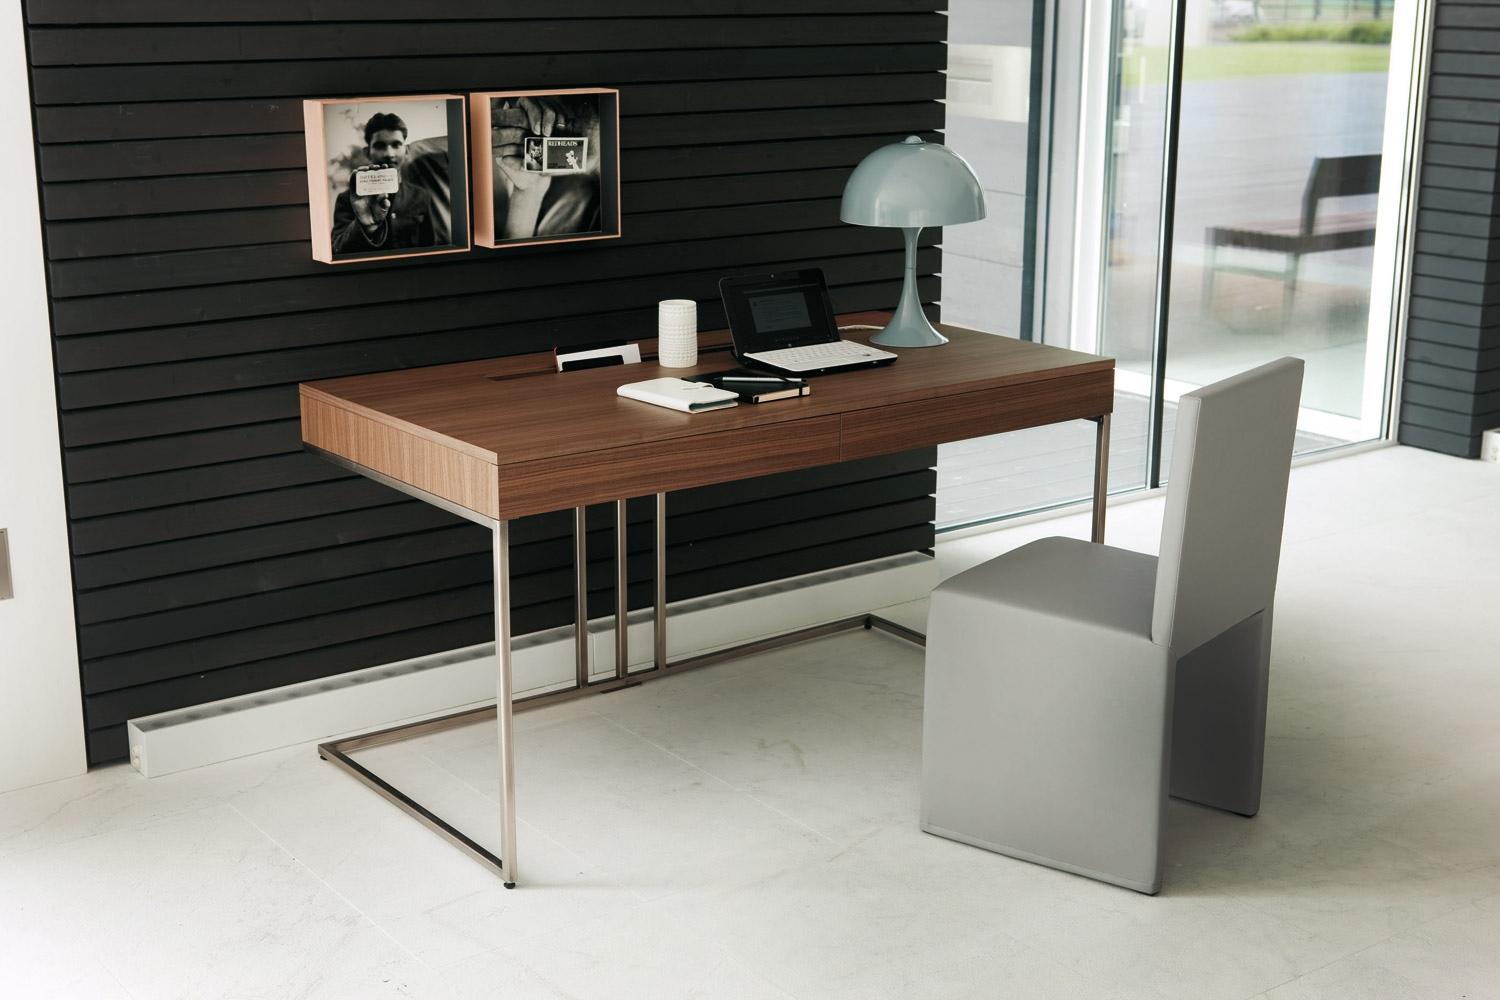 don t have to be hidden away a sleek contemporary desk design can make